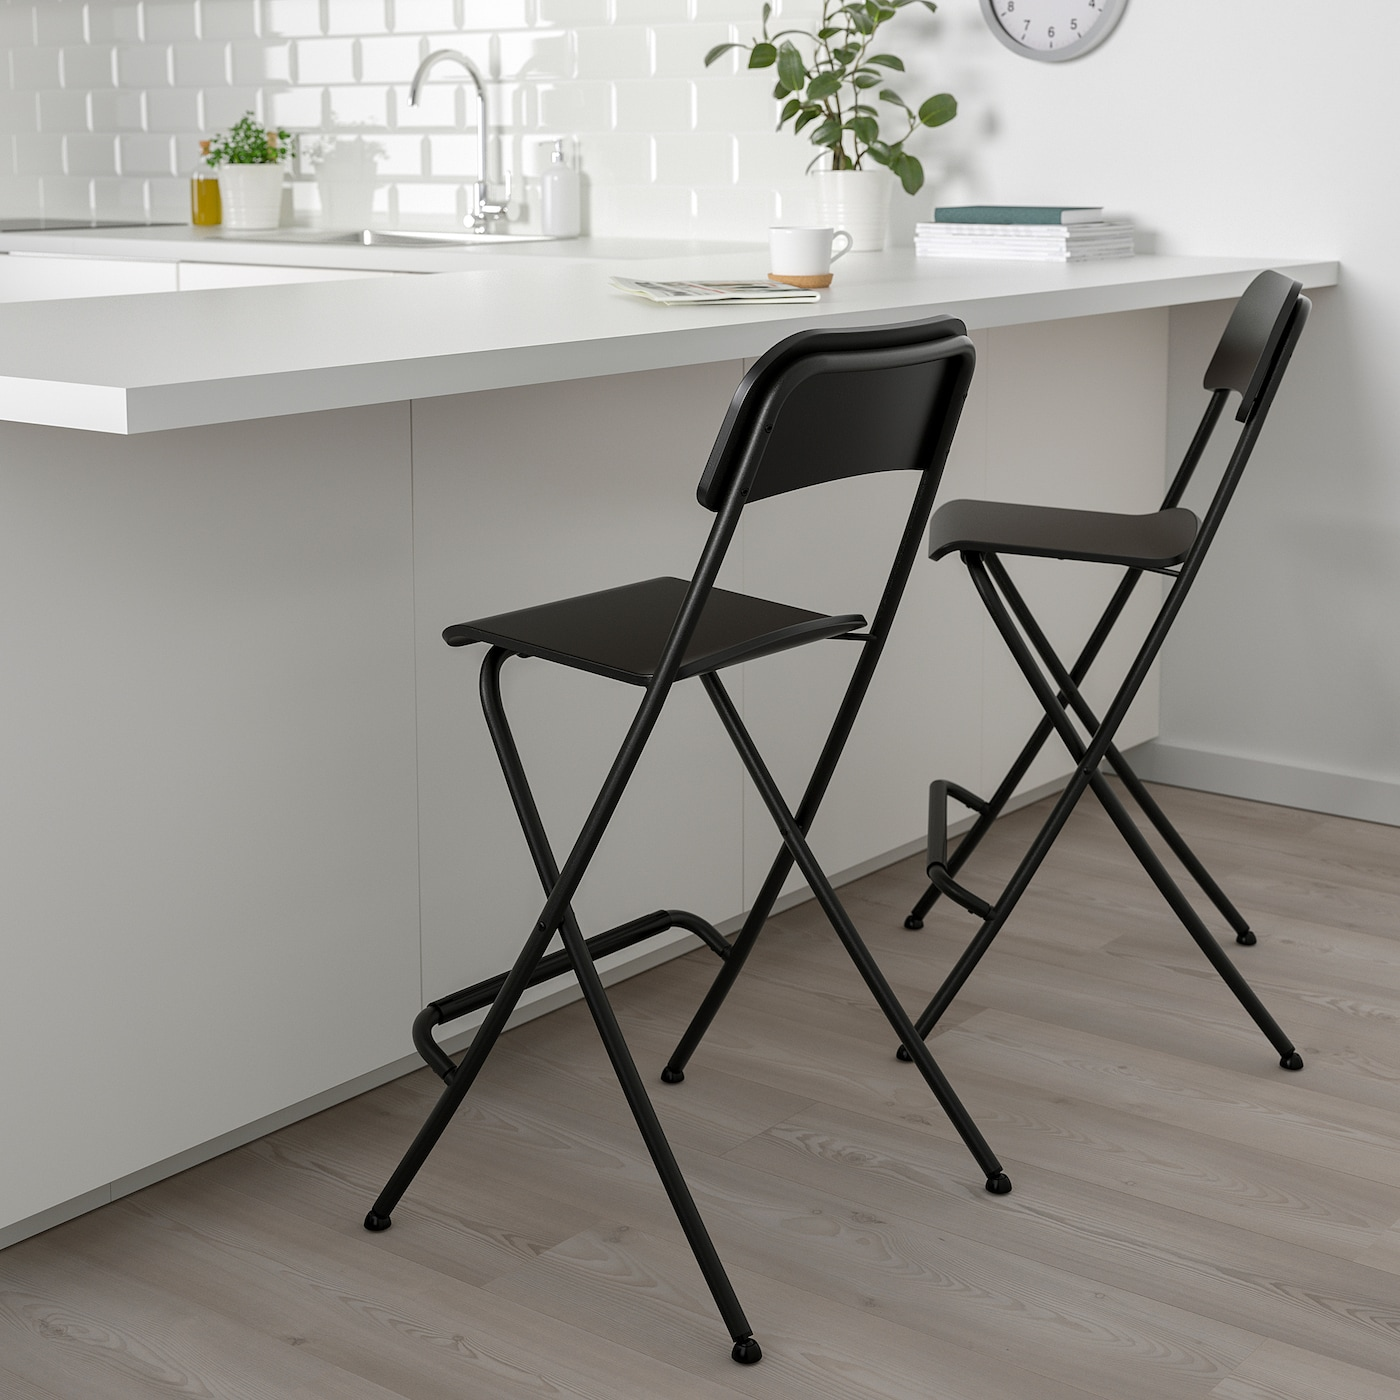 Bar stool with backrest, foldable